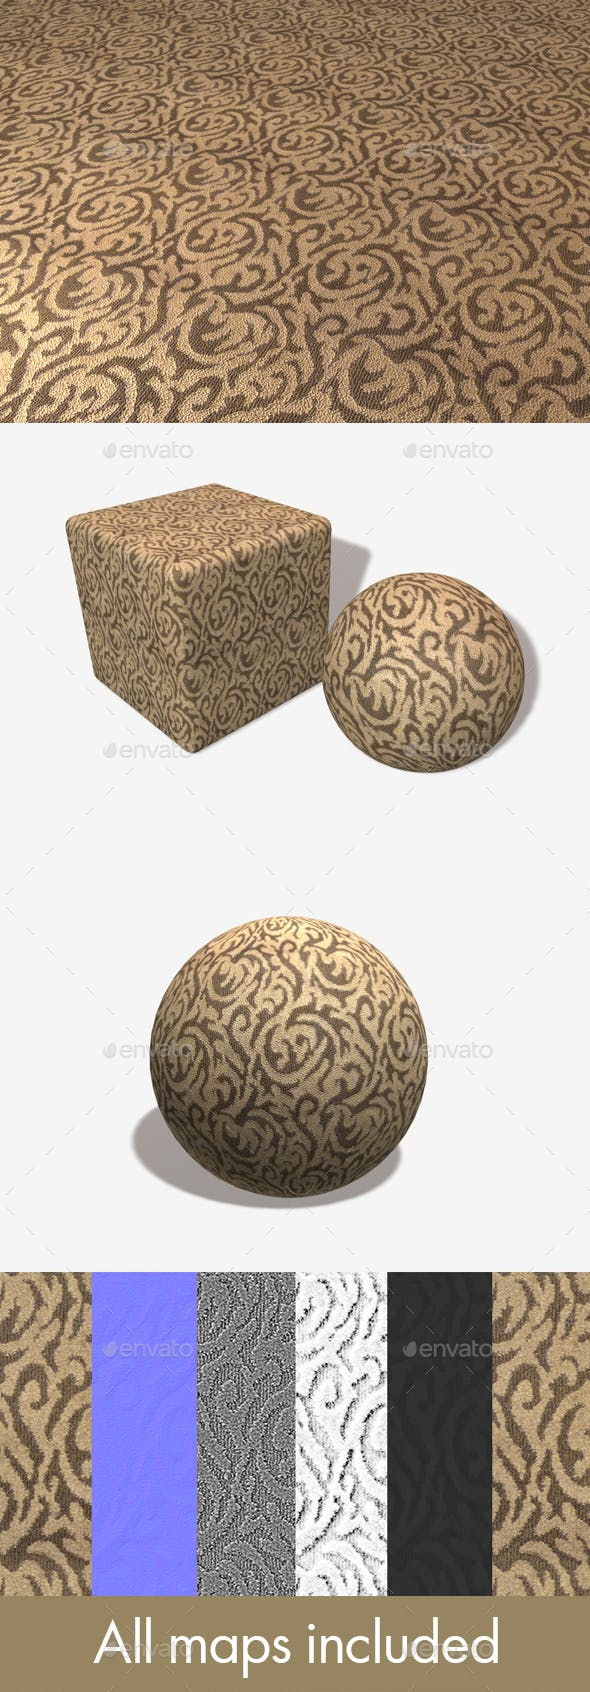 Brown Curly Carpet Seamless Texture - 3DOcean Item for Sale